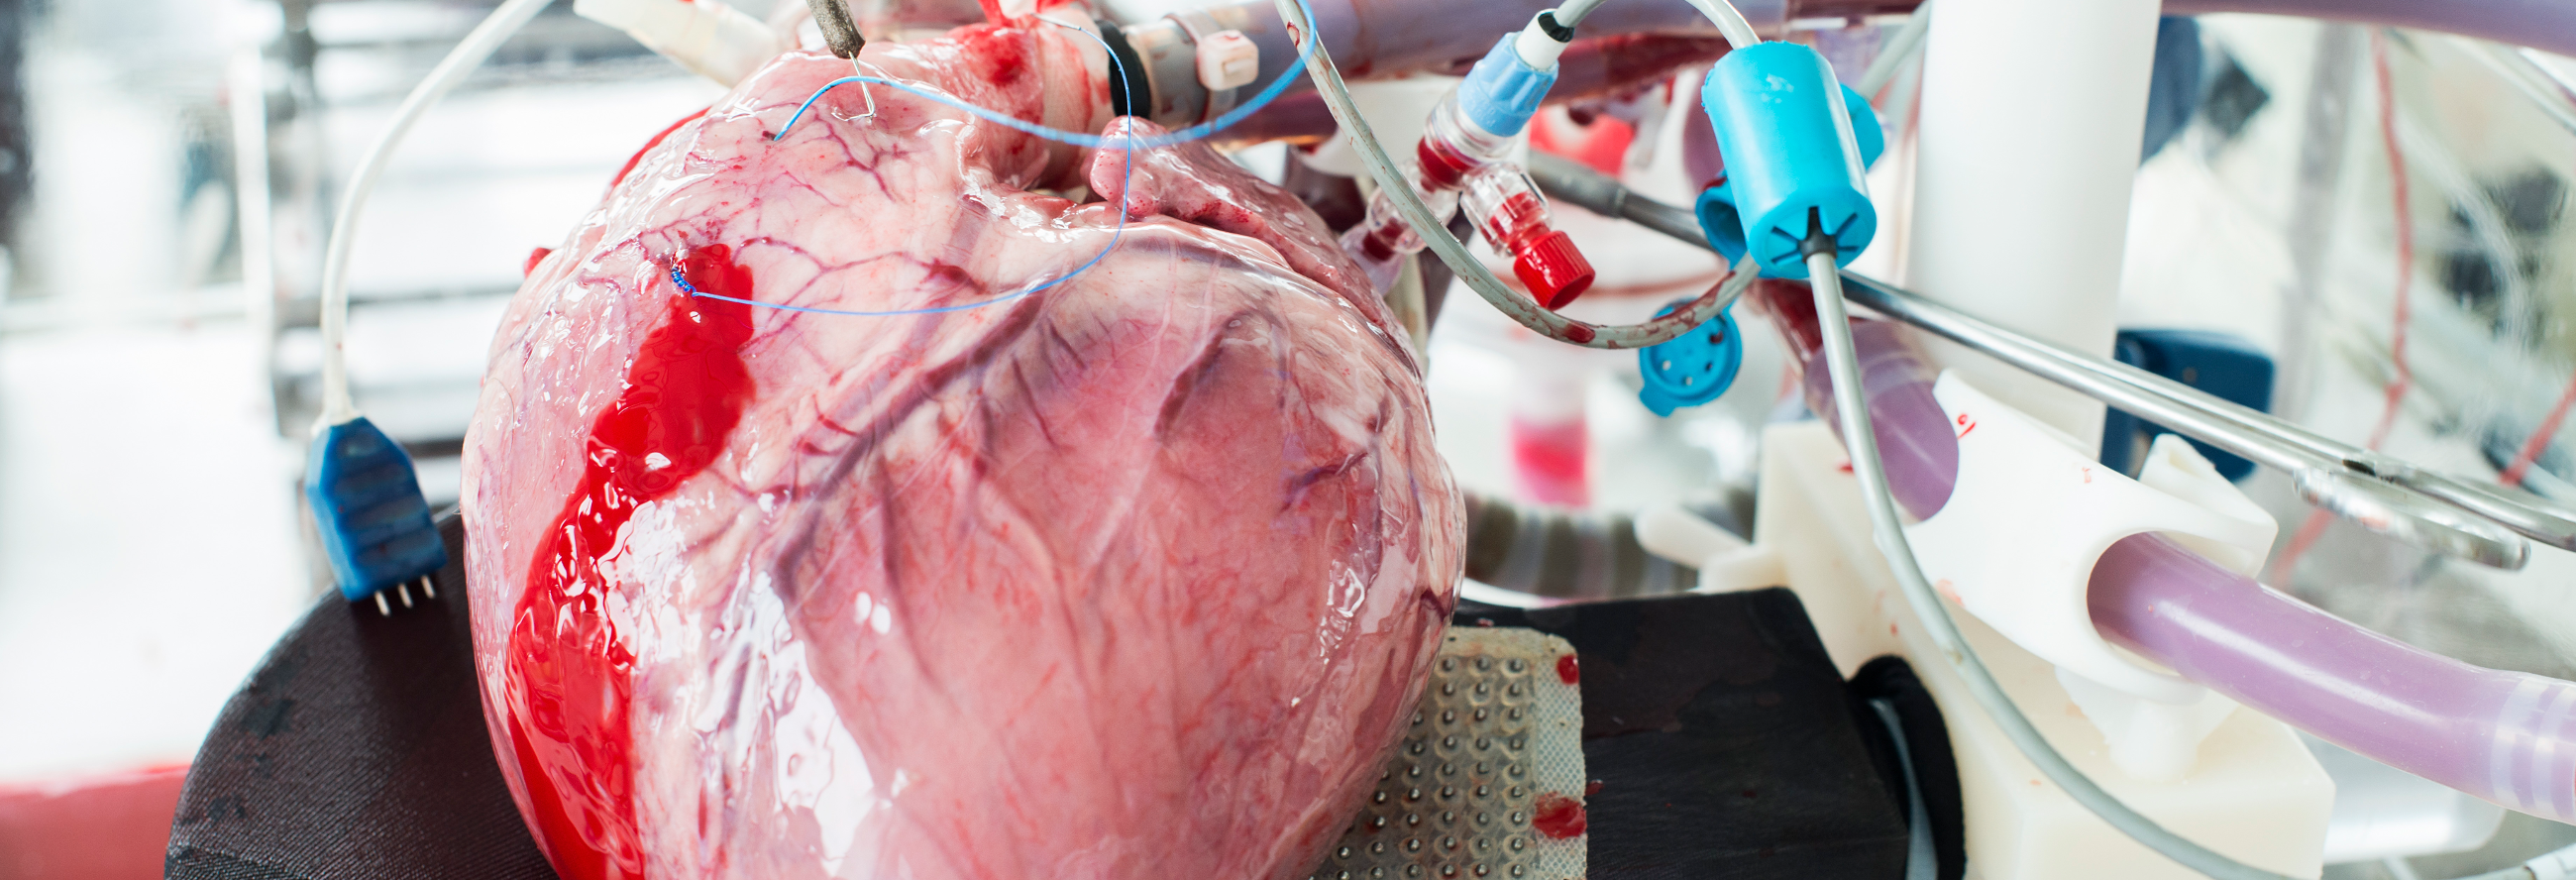 "Paper: ""Investigating the physiology of normothermic ex vivo heart perfusion in an isolated slaughterhouse porcine model used for device testing and training"""